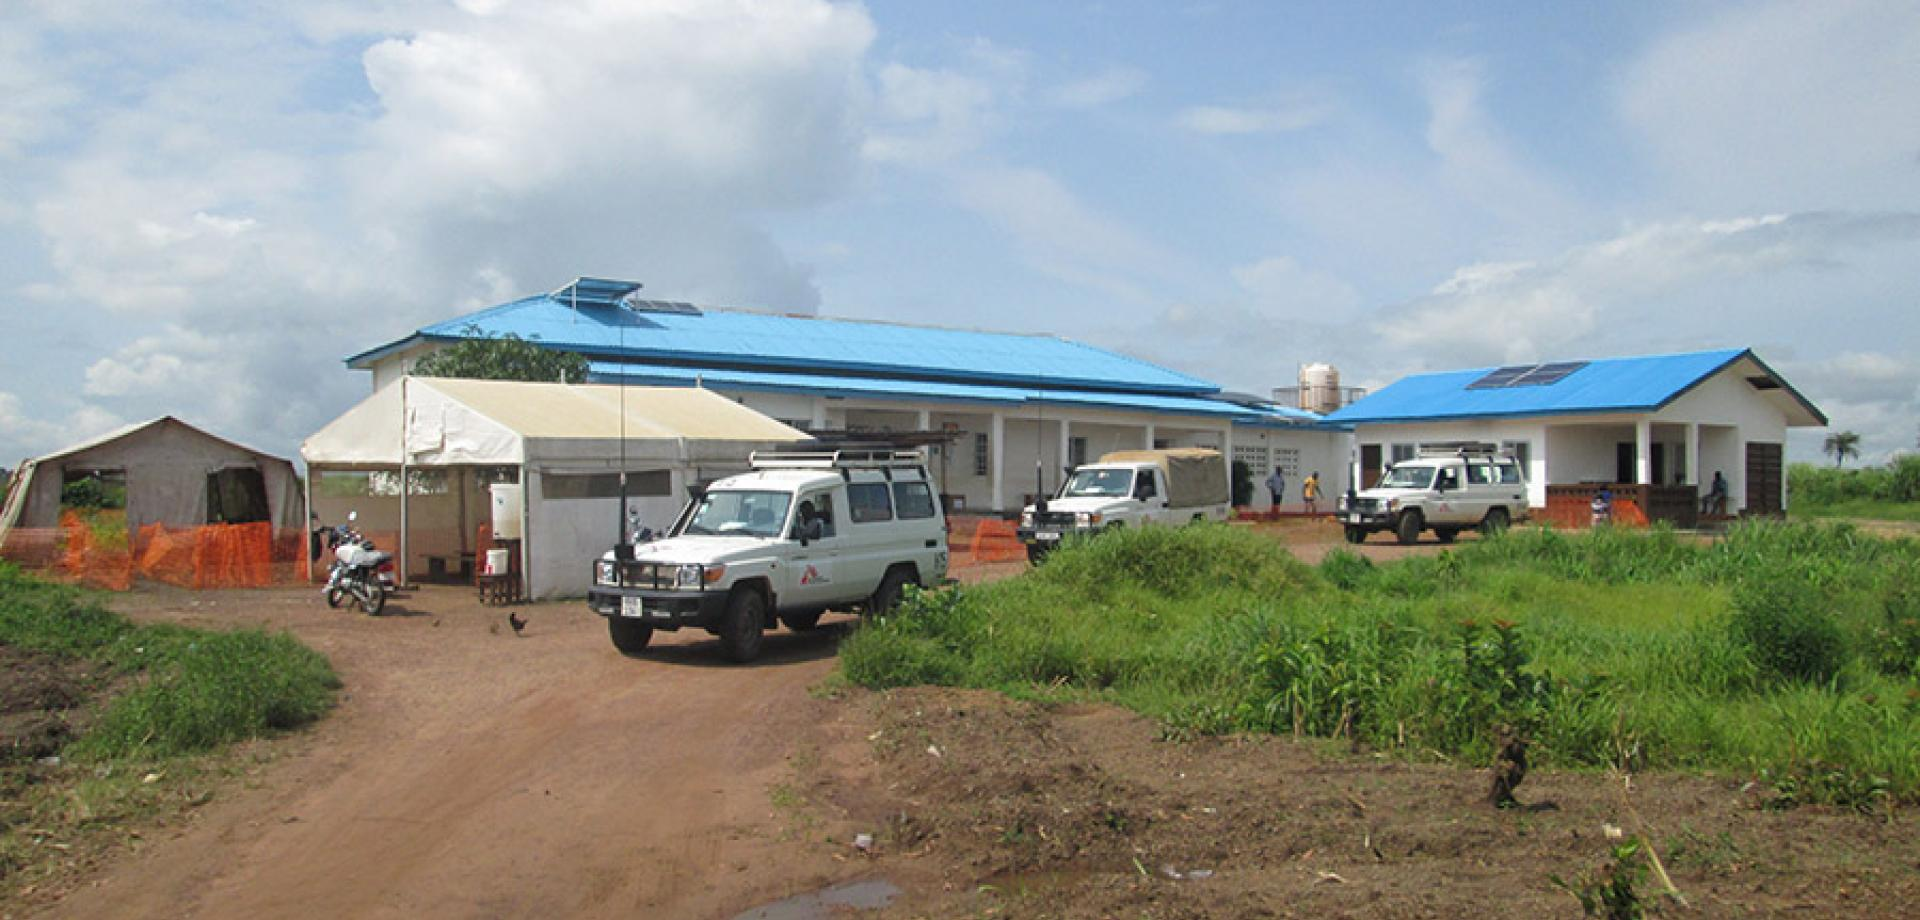 The clinic in Sierra Leone